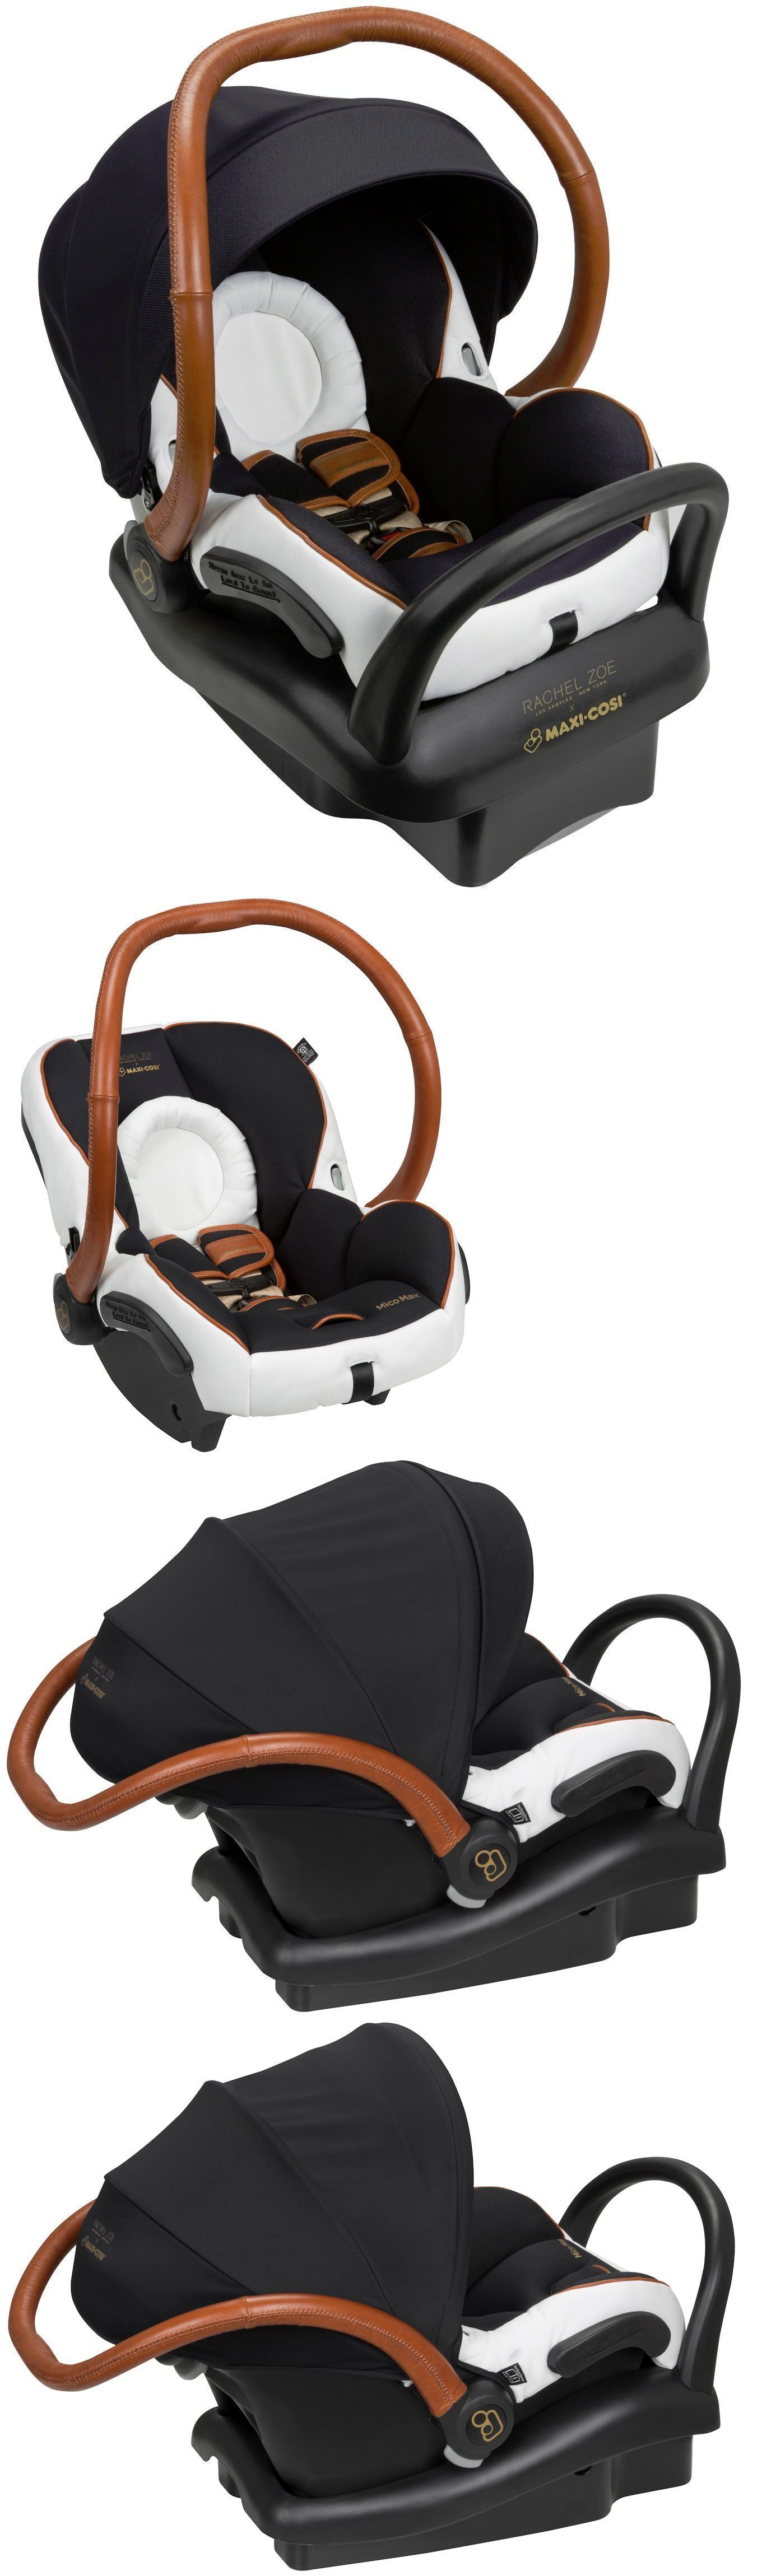 Maxi-Cosi Mico Max 30 Rachel Zoe Special Edition Infant Car Seat w ...